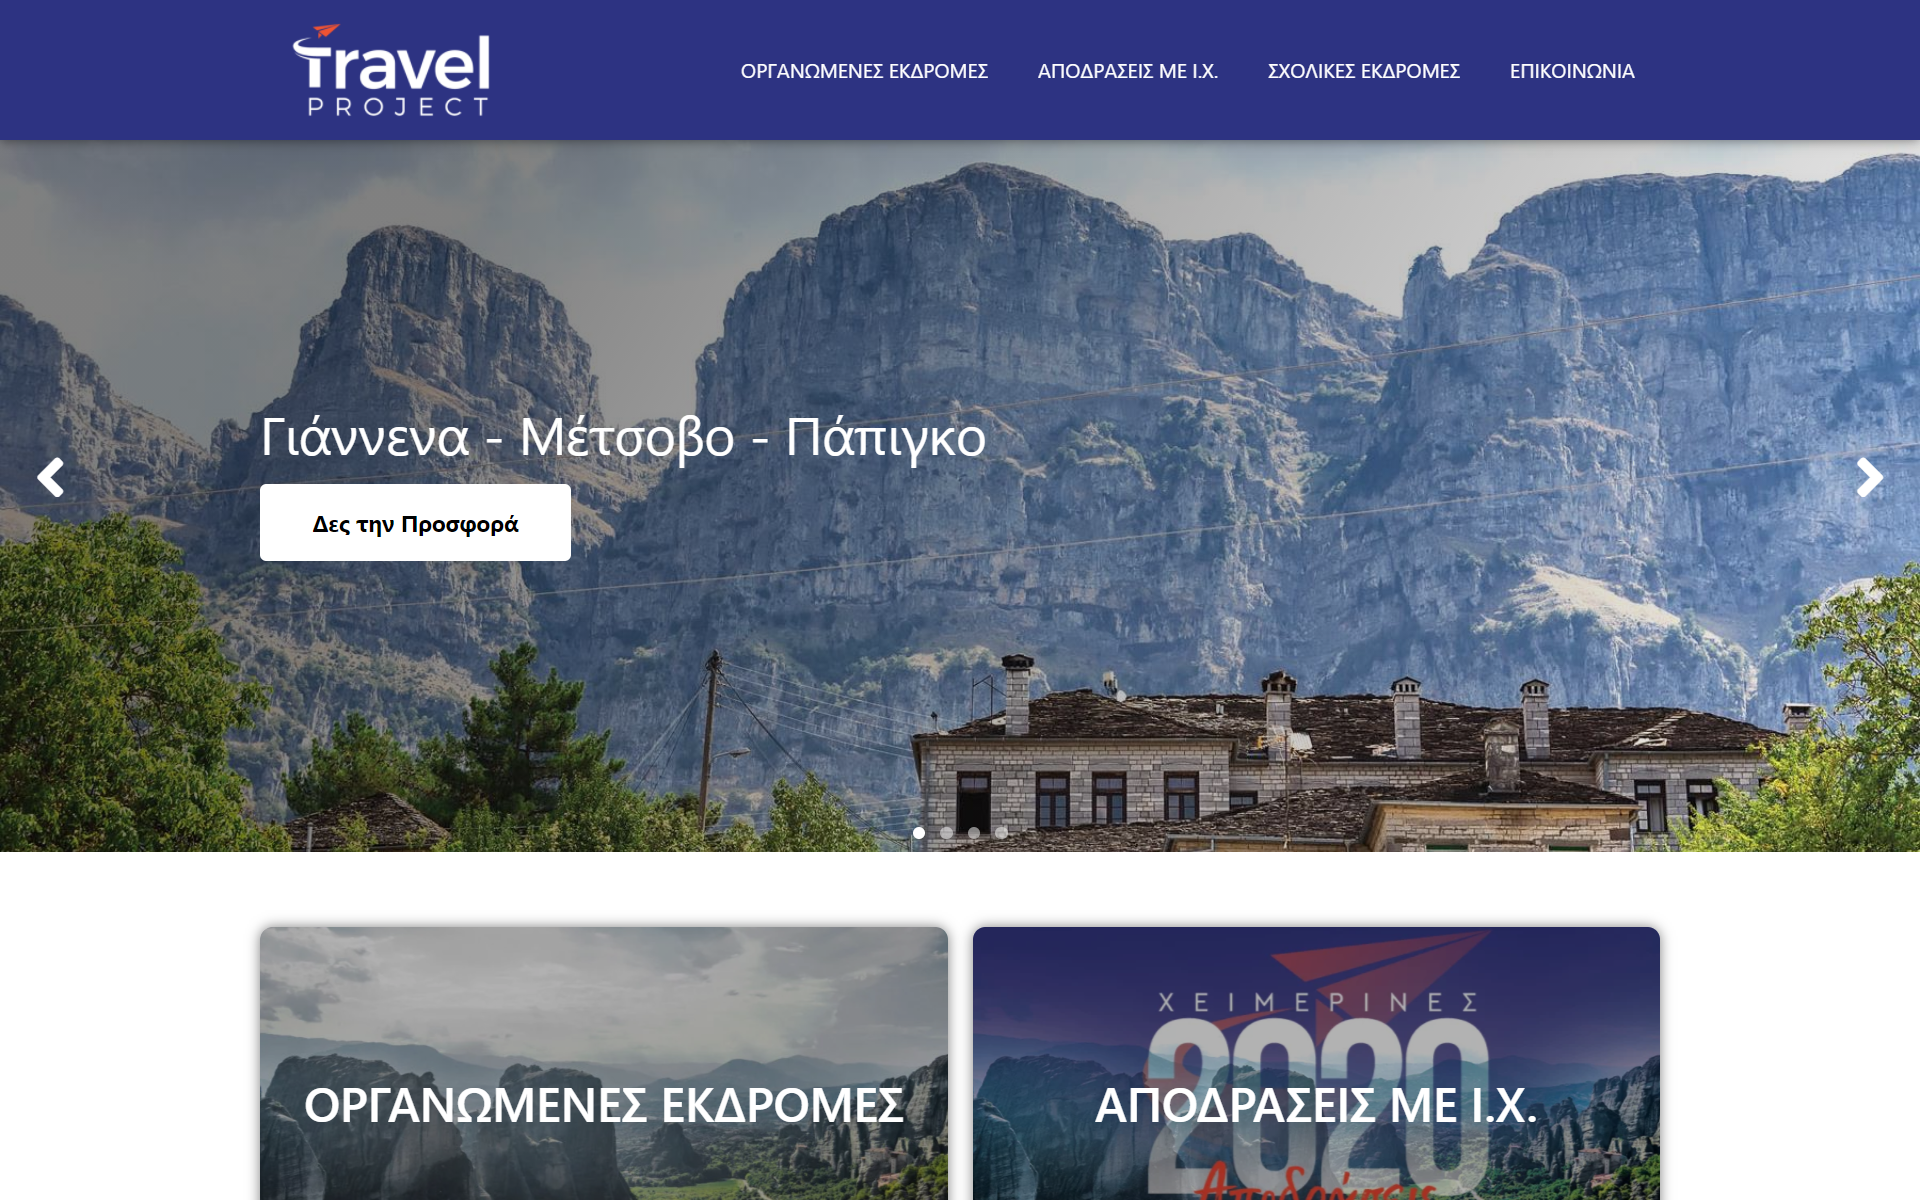 TravelProject.gr